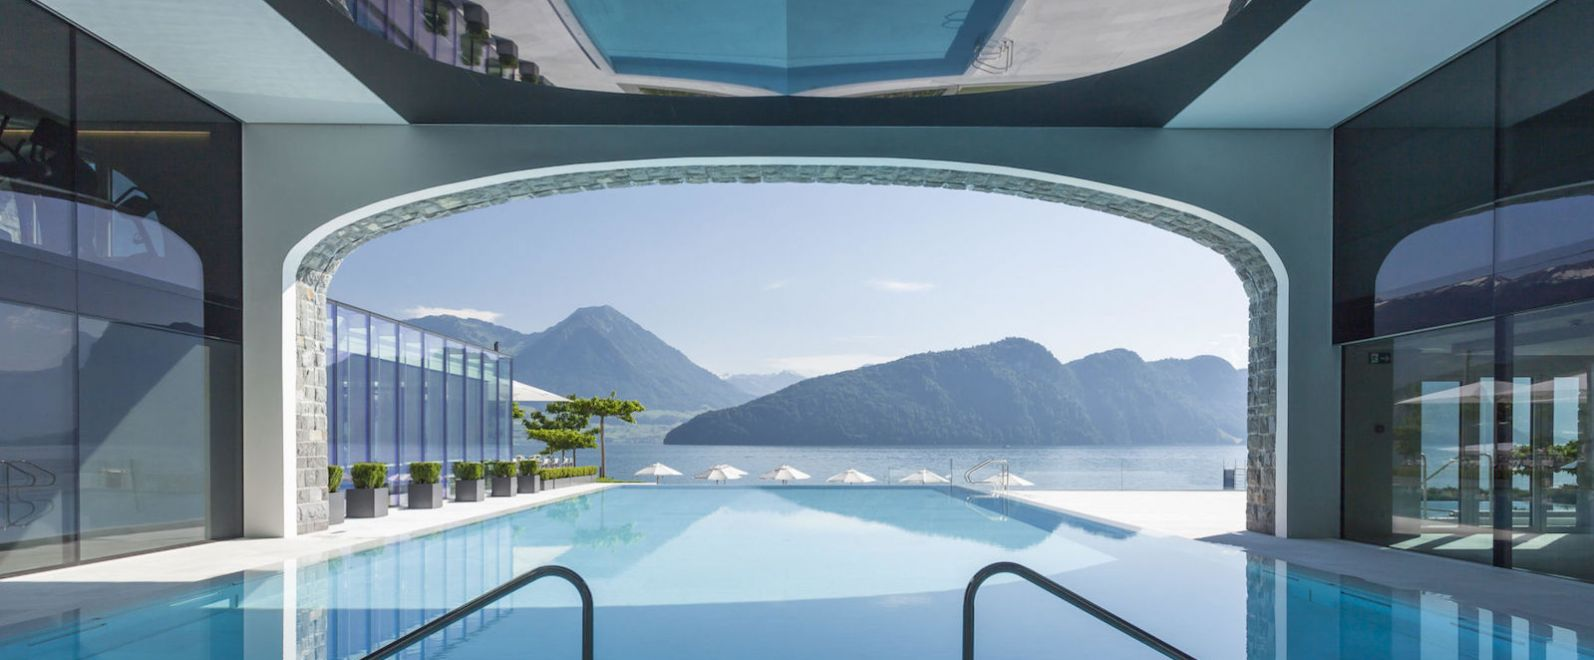 White Line Hotels - Luxury Hotel in Switzerland, Pool, Alps, Park Hotel Vitznau